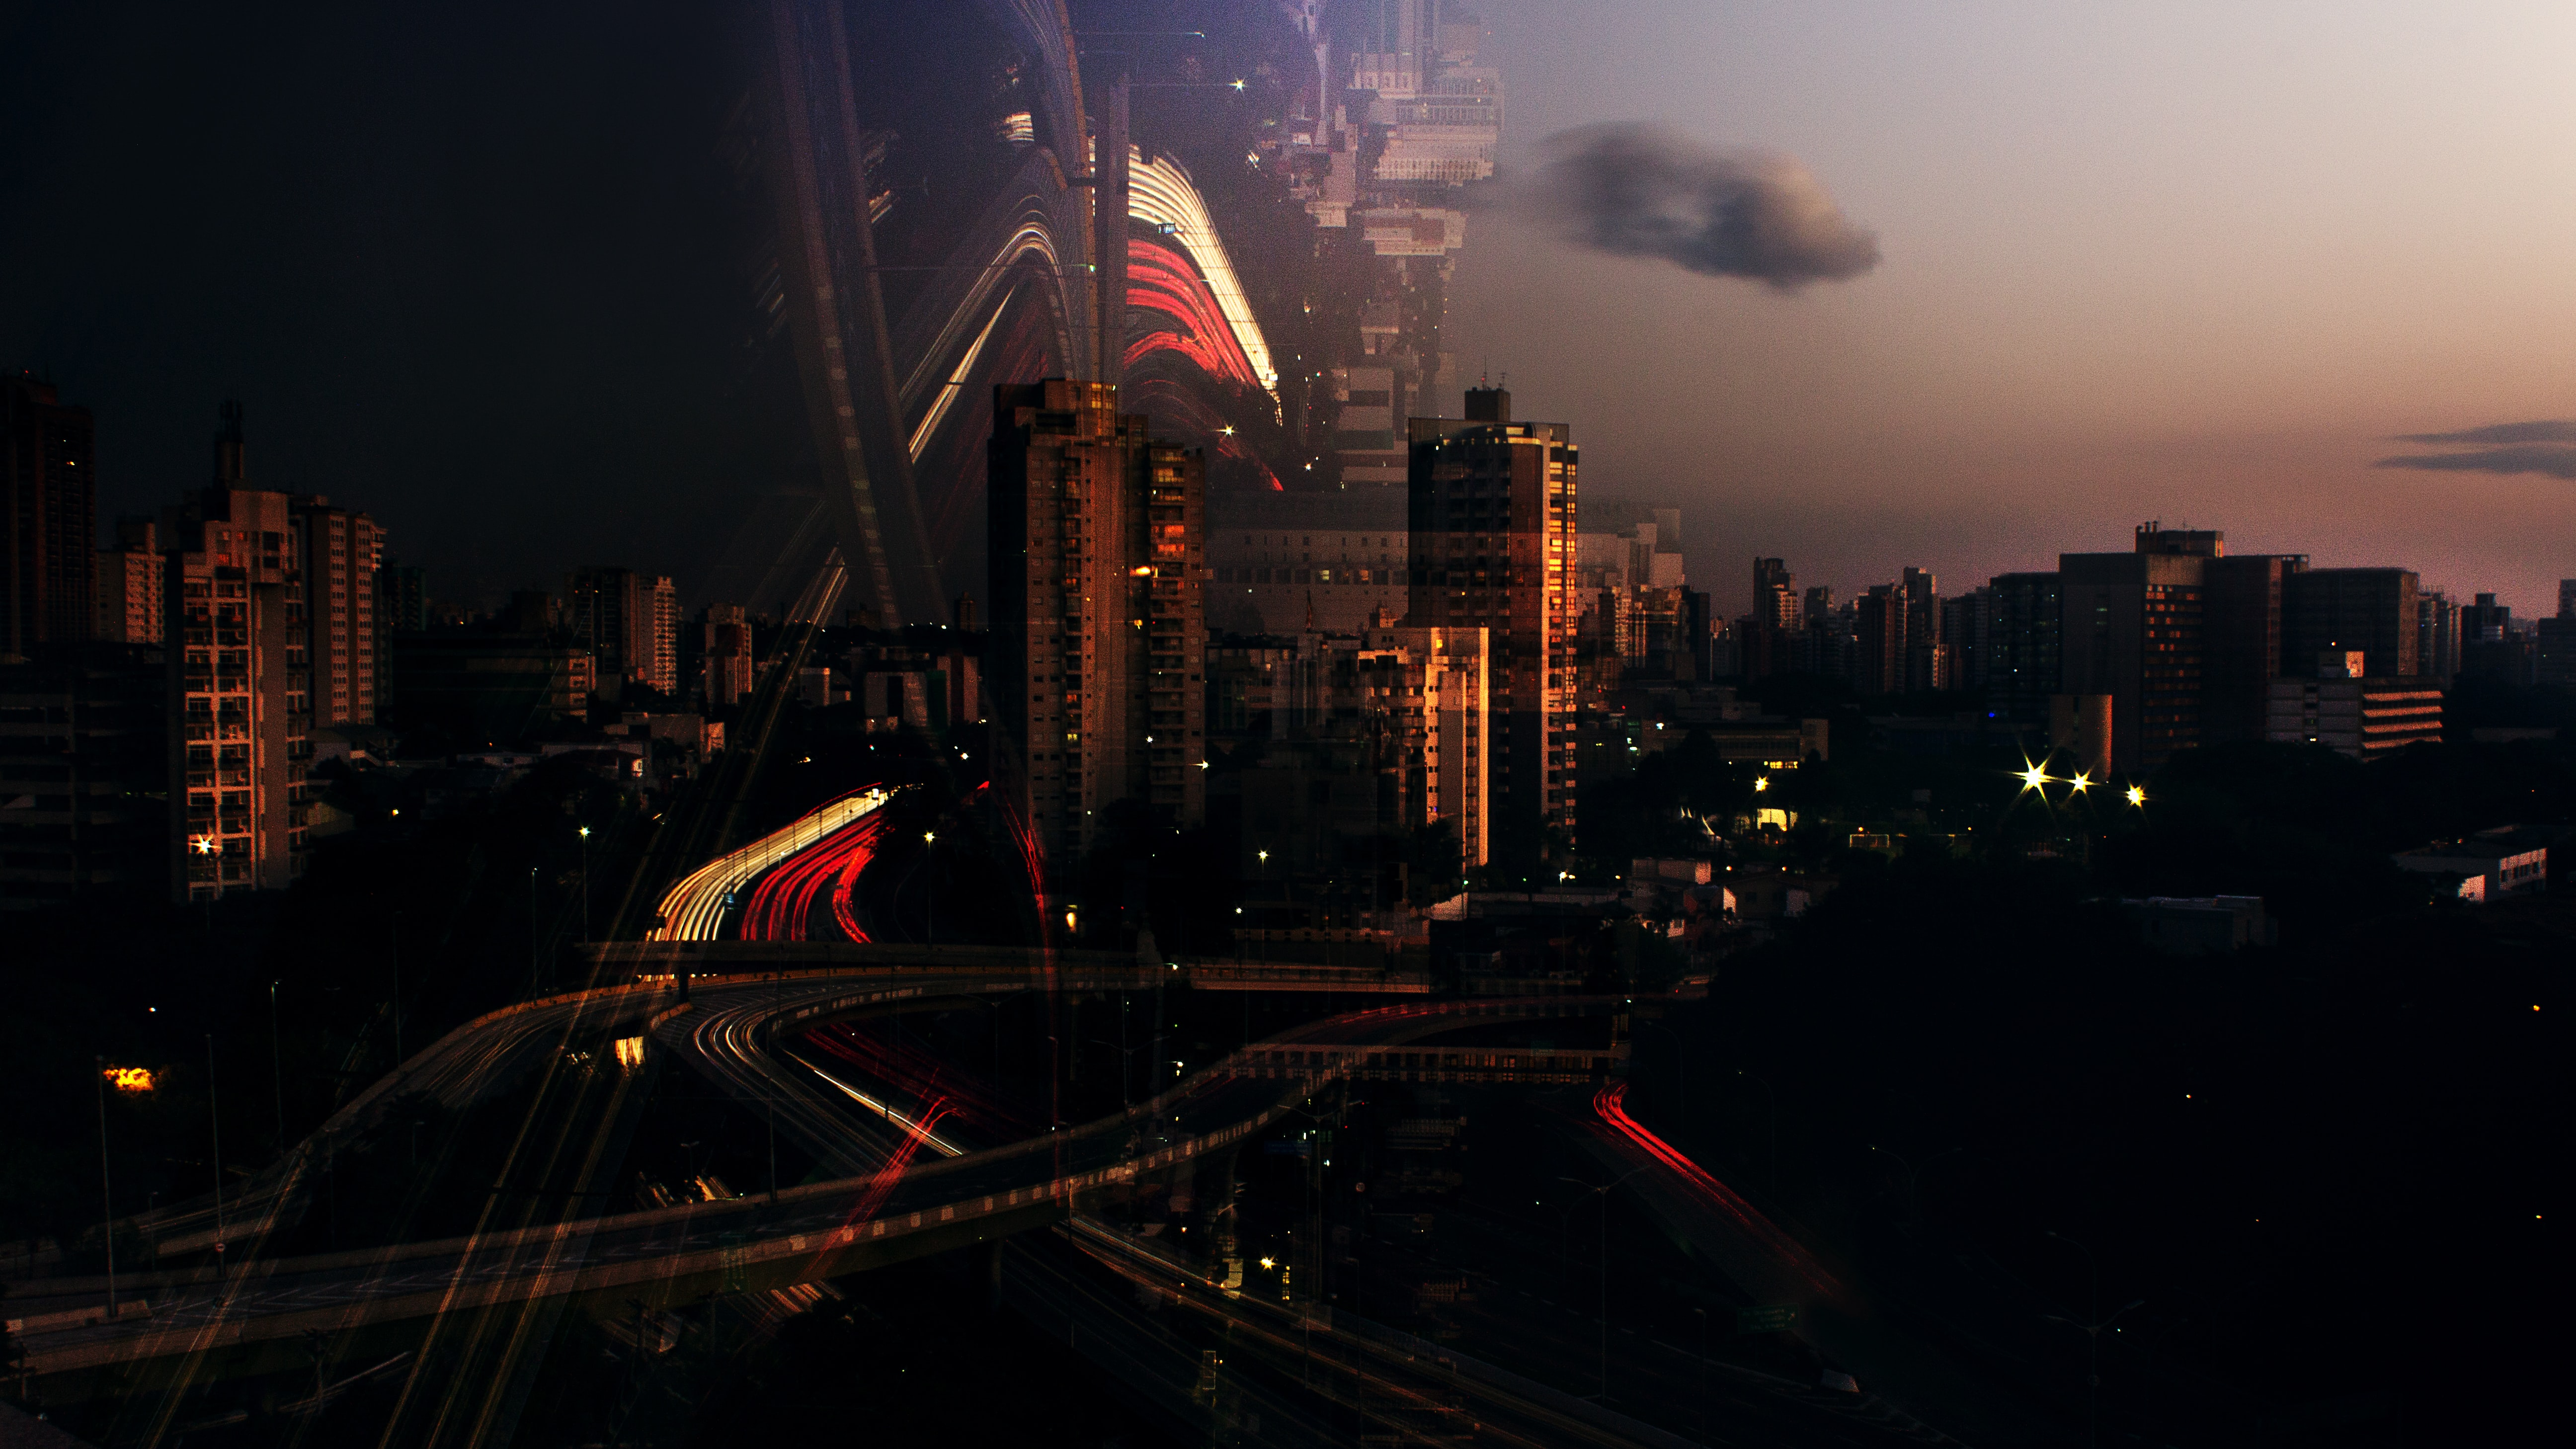 landscape photography of a city during golden hour